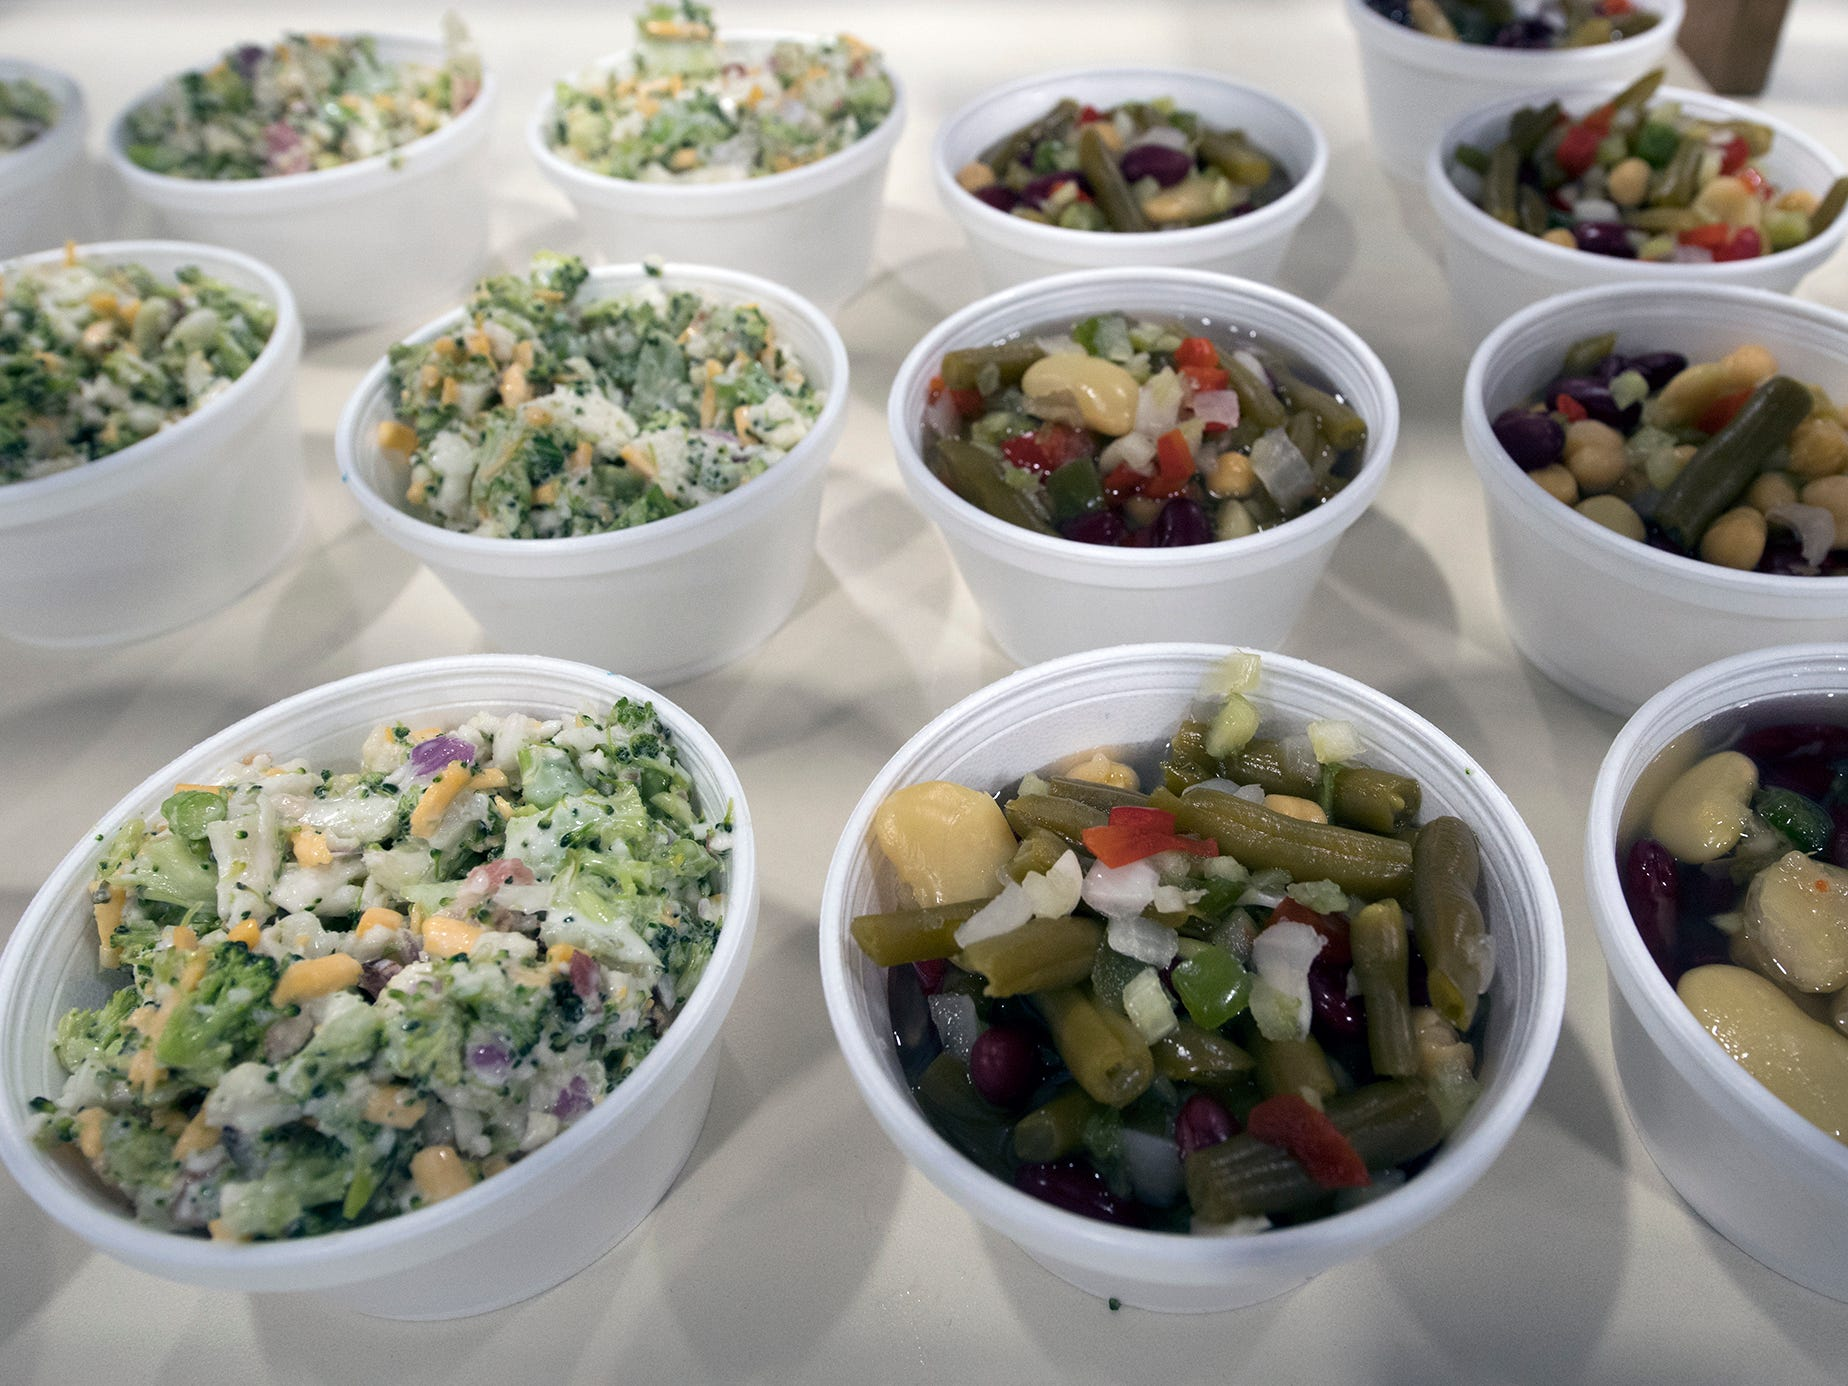 Salads presented by the Pennsylvania Vegetable Growers Association in the food court during The 103rd Pennsylvania Farm Show in Harrisburg Sunday January 6, 2019.